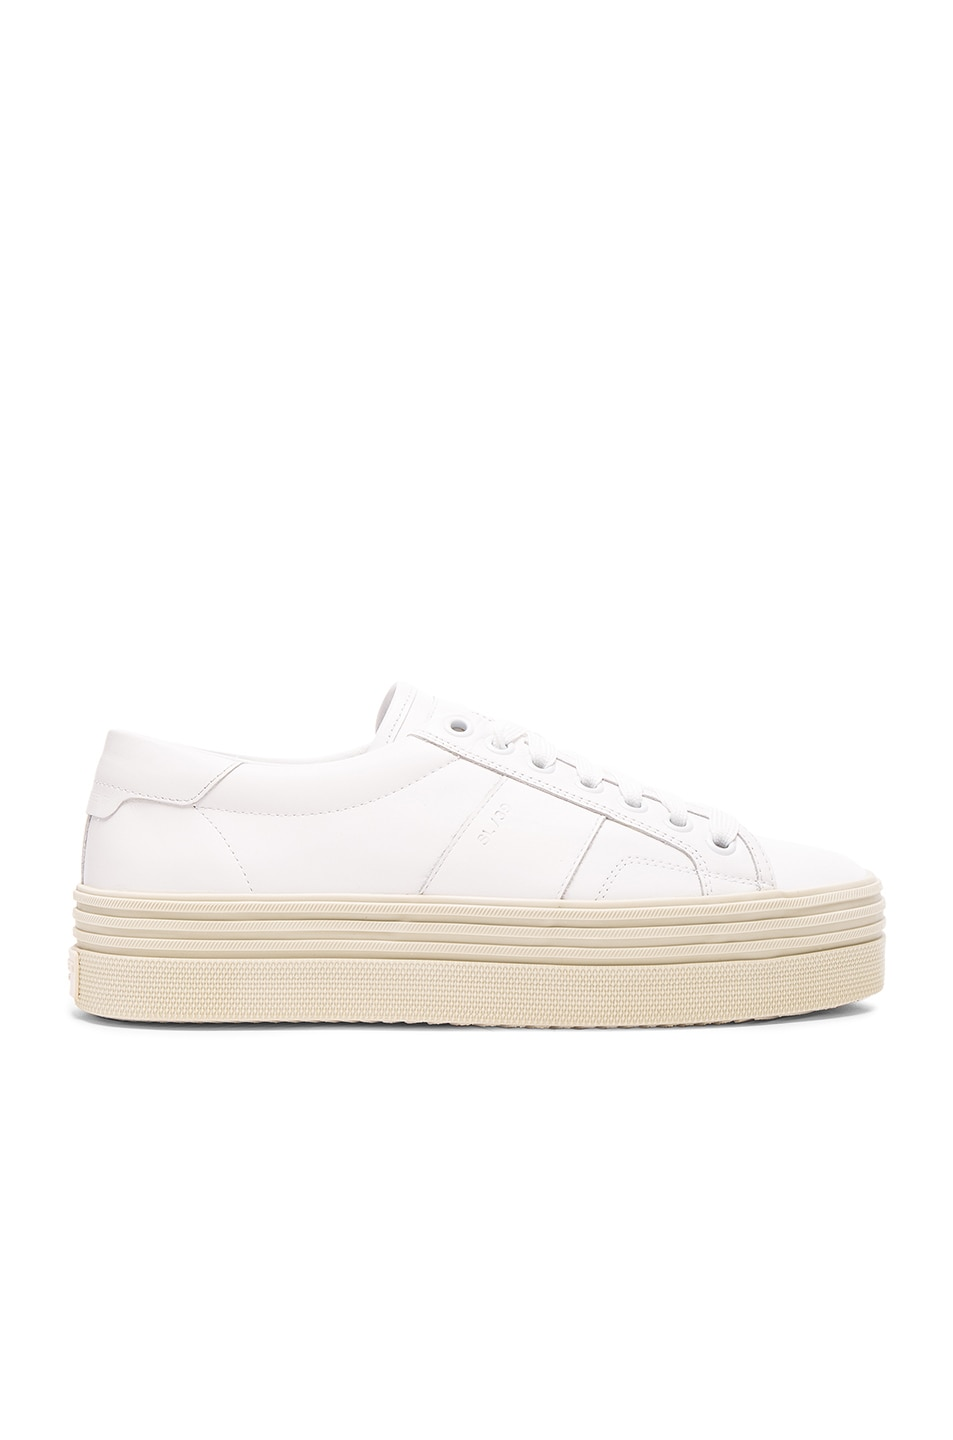 free shipping clearance store Saint Laurent Leather Flatform Sneakers clearance sale online cost sale online cheap wholesale clearance 100% guaranteed DsCJP